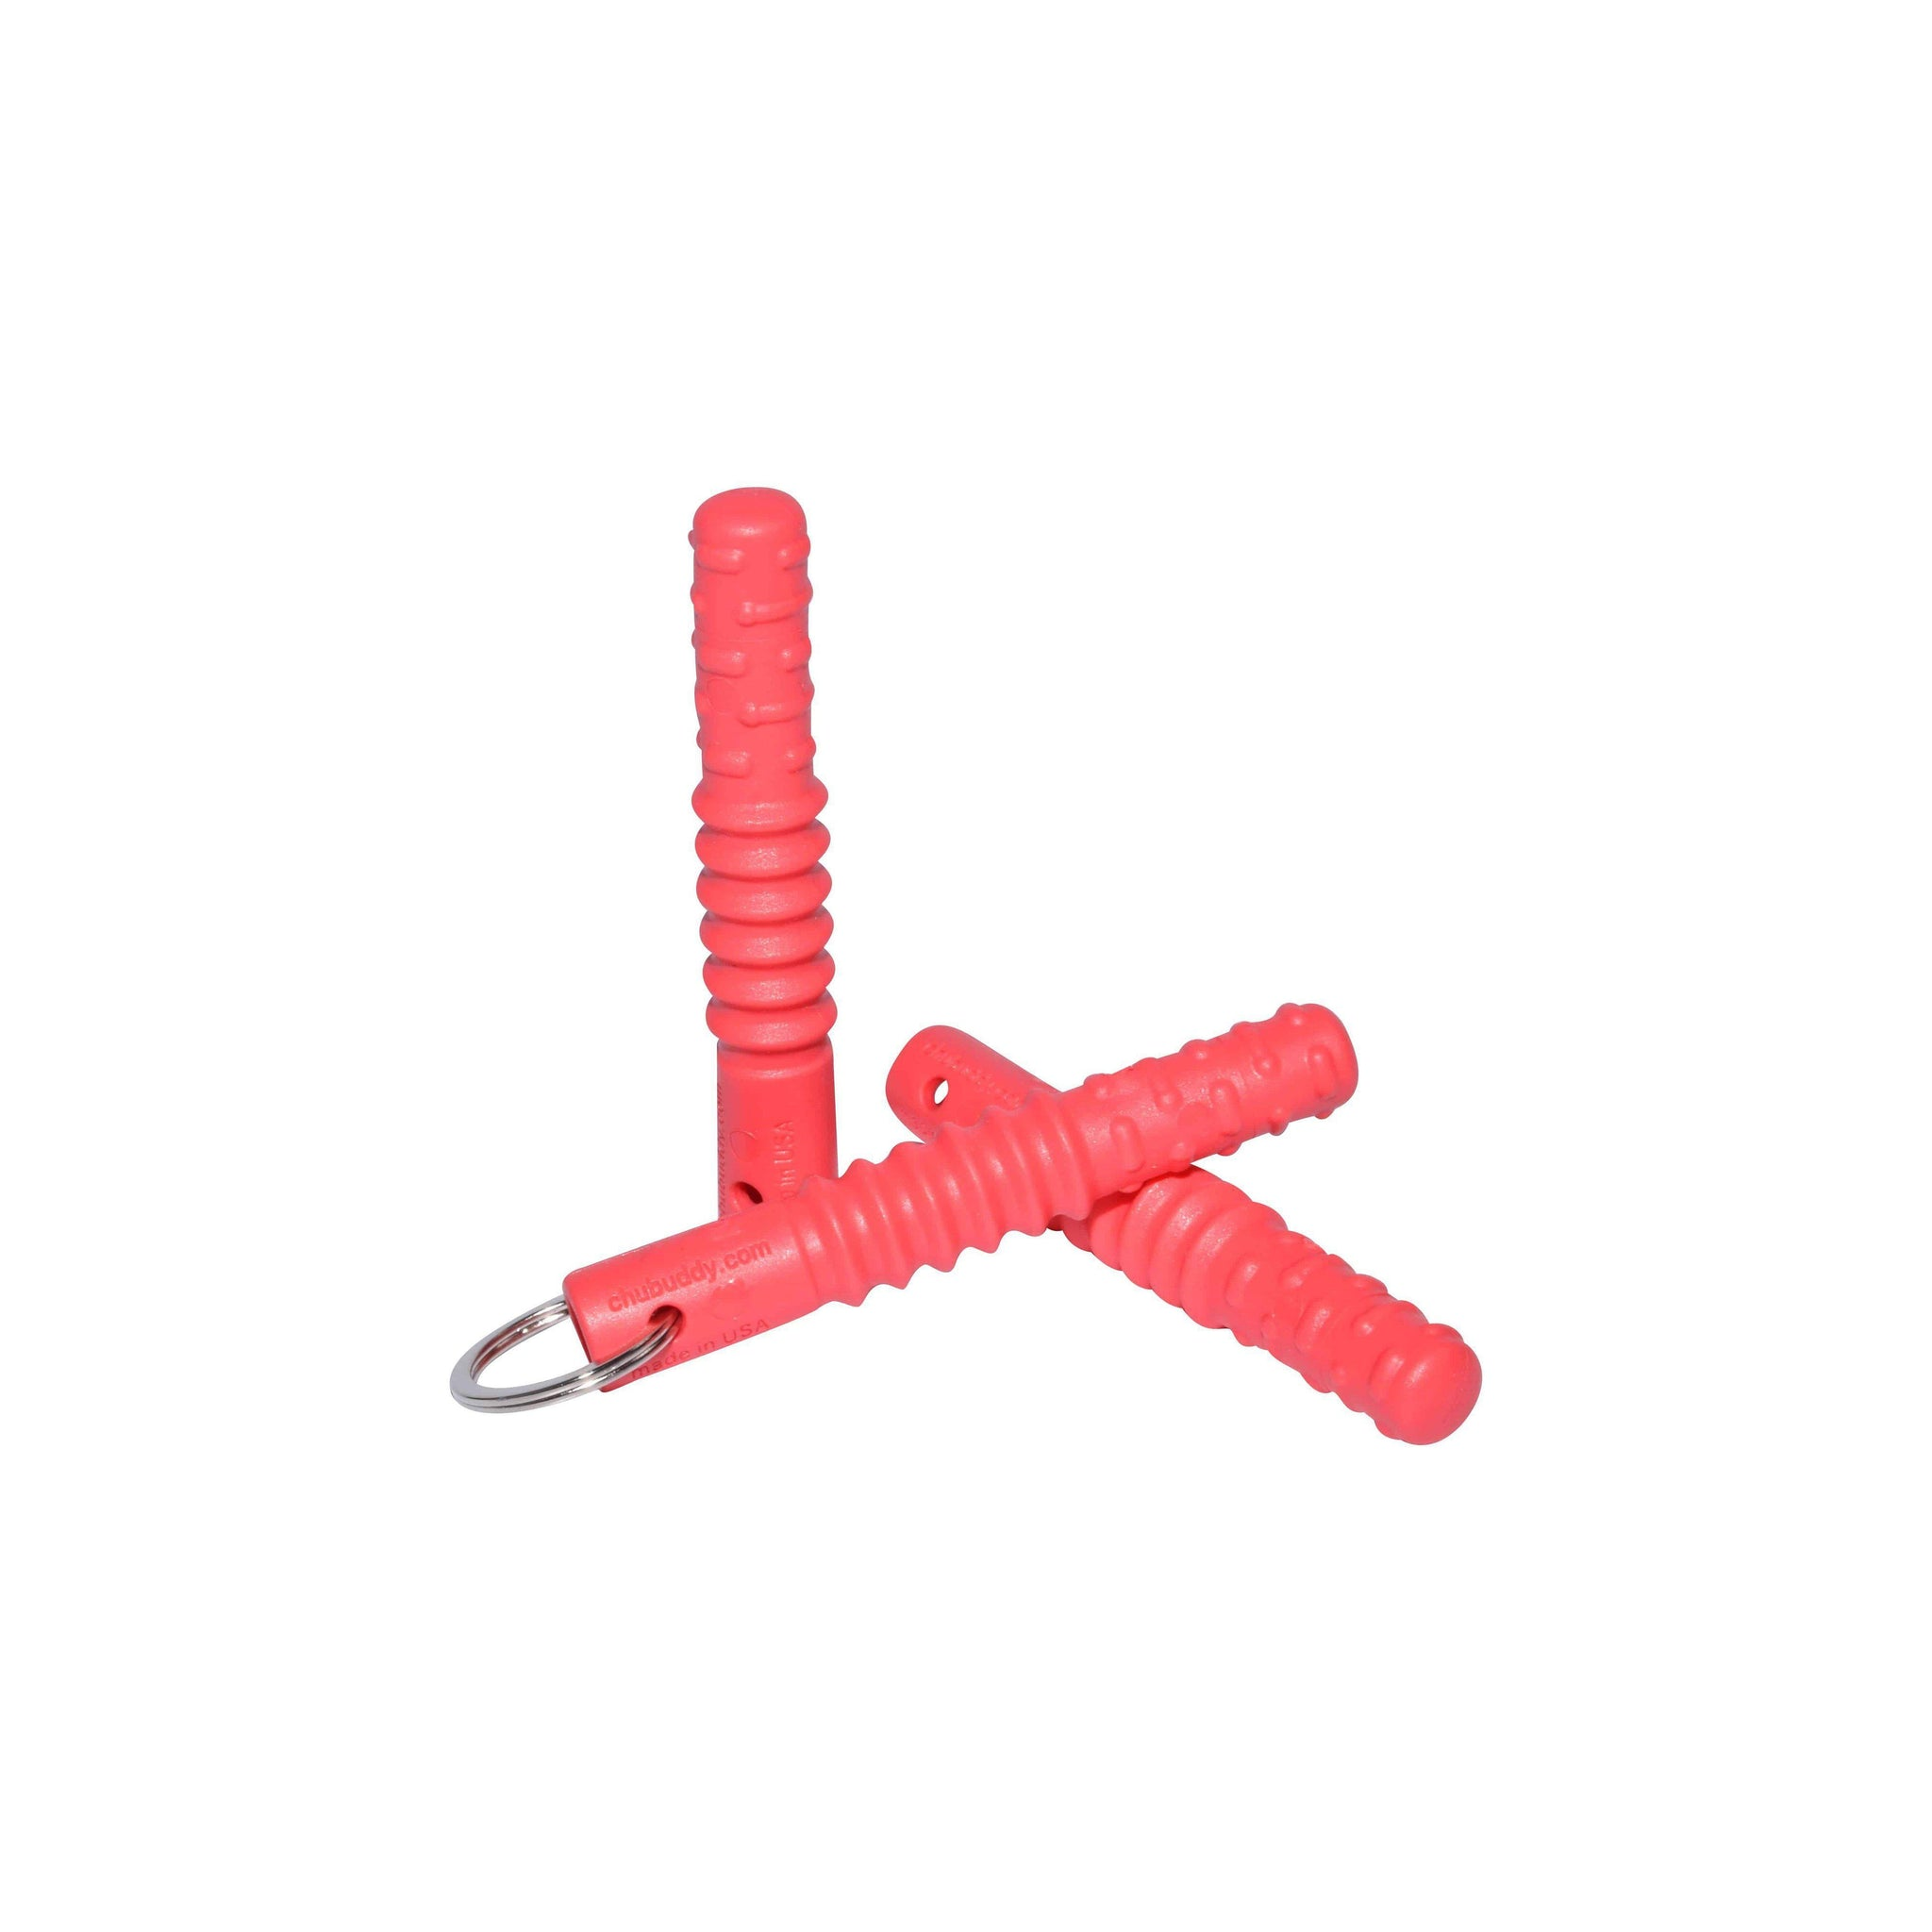 Zipper Zilla, Red  | 70A Durometer Soft | Chew Factor 3.0 Strong | Attaches to Most Zippers | Easy Access